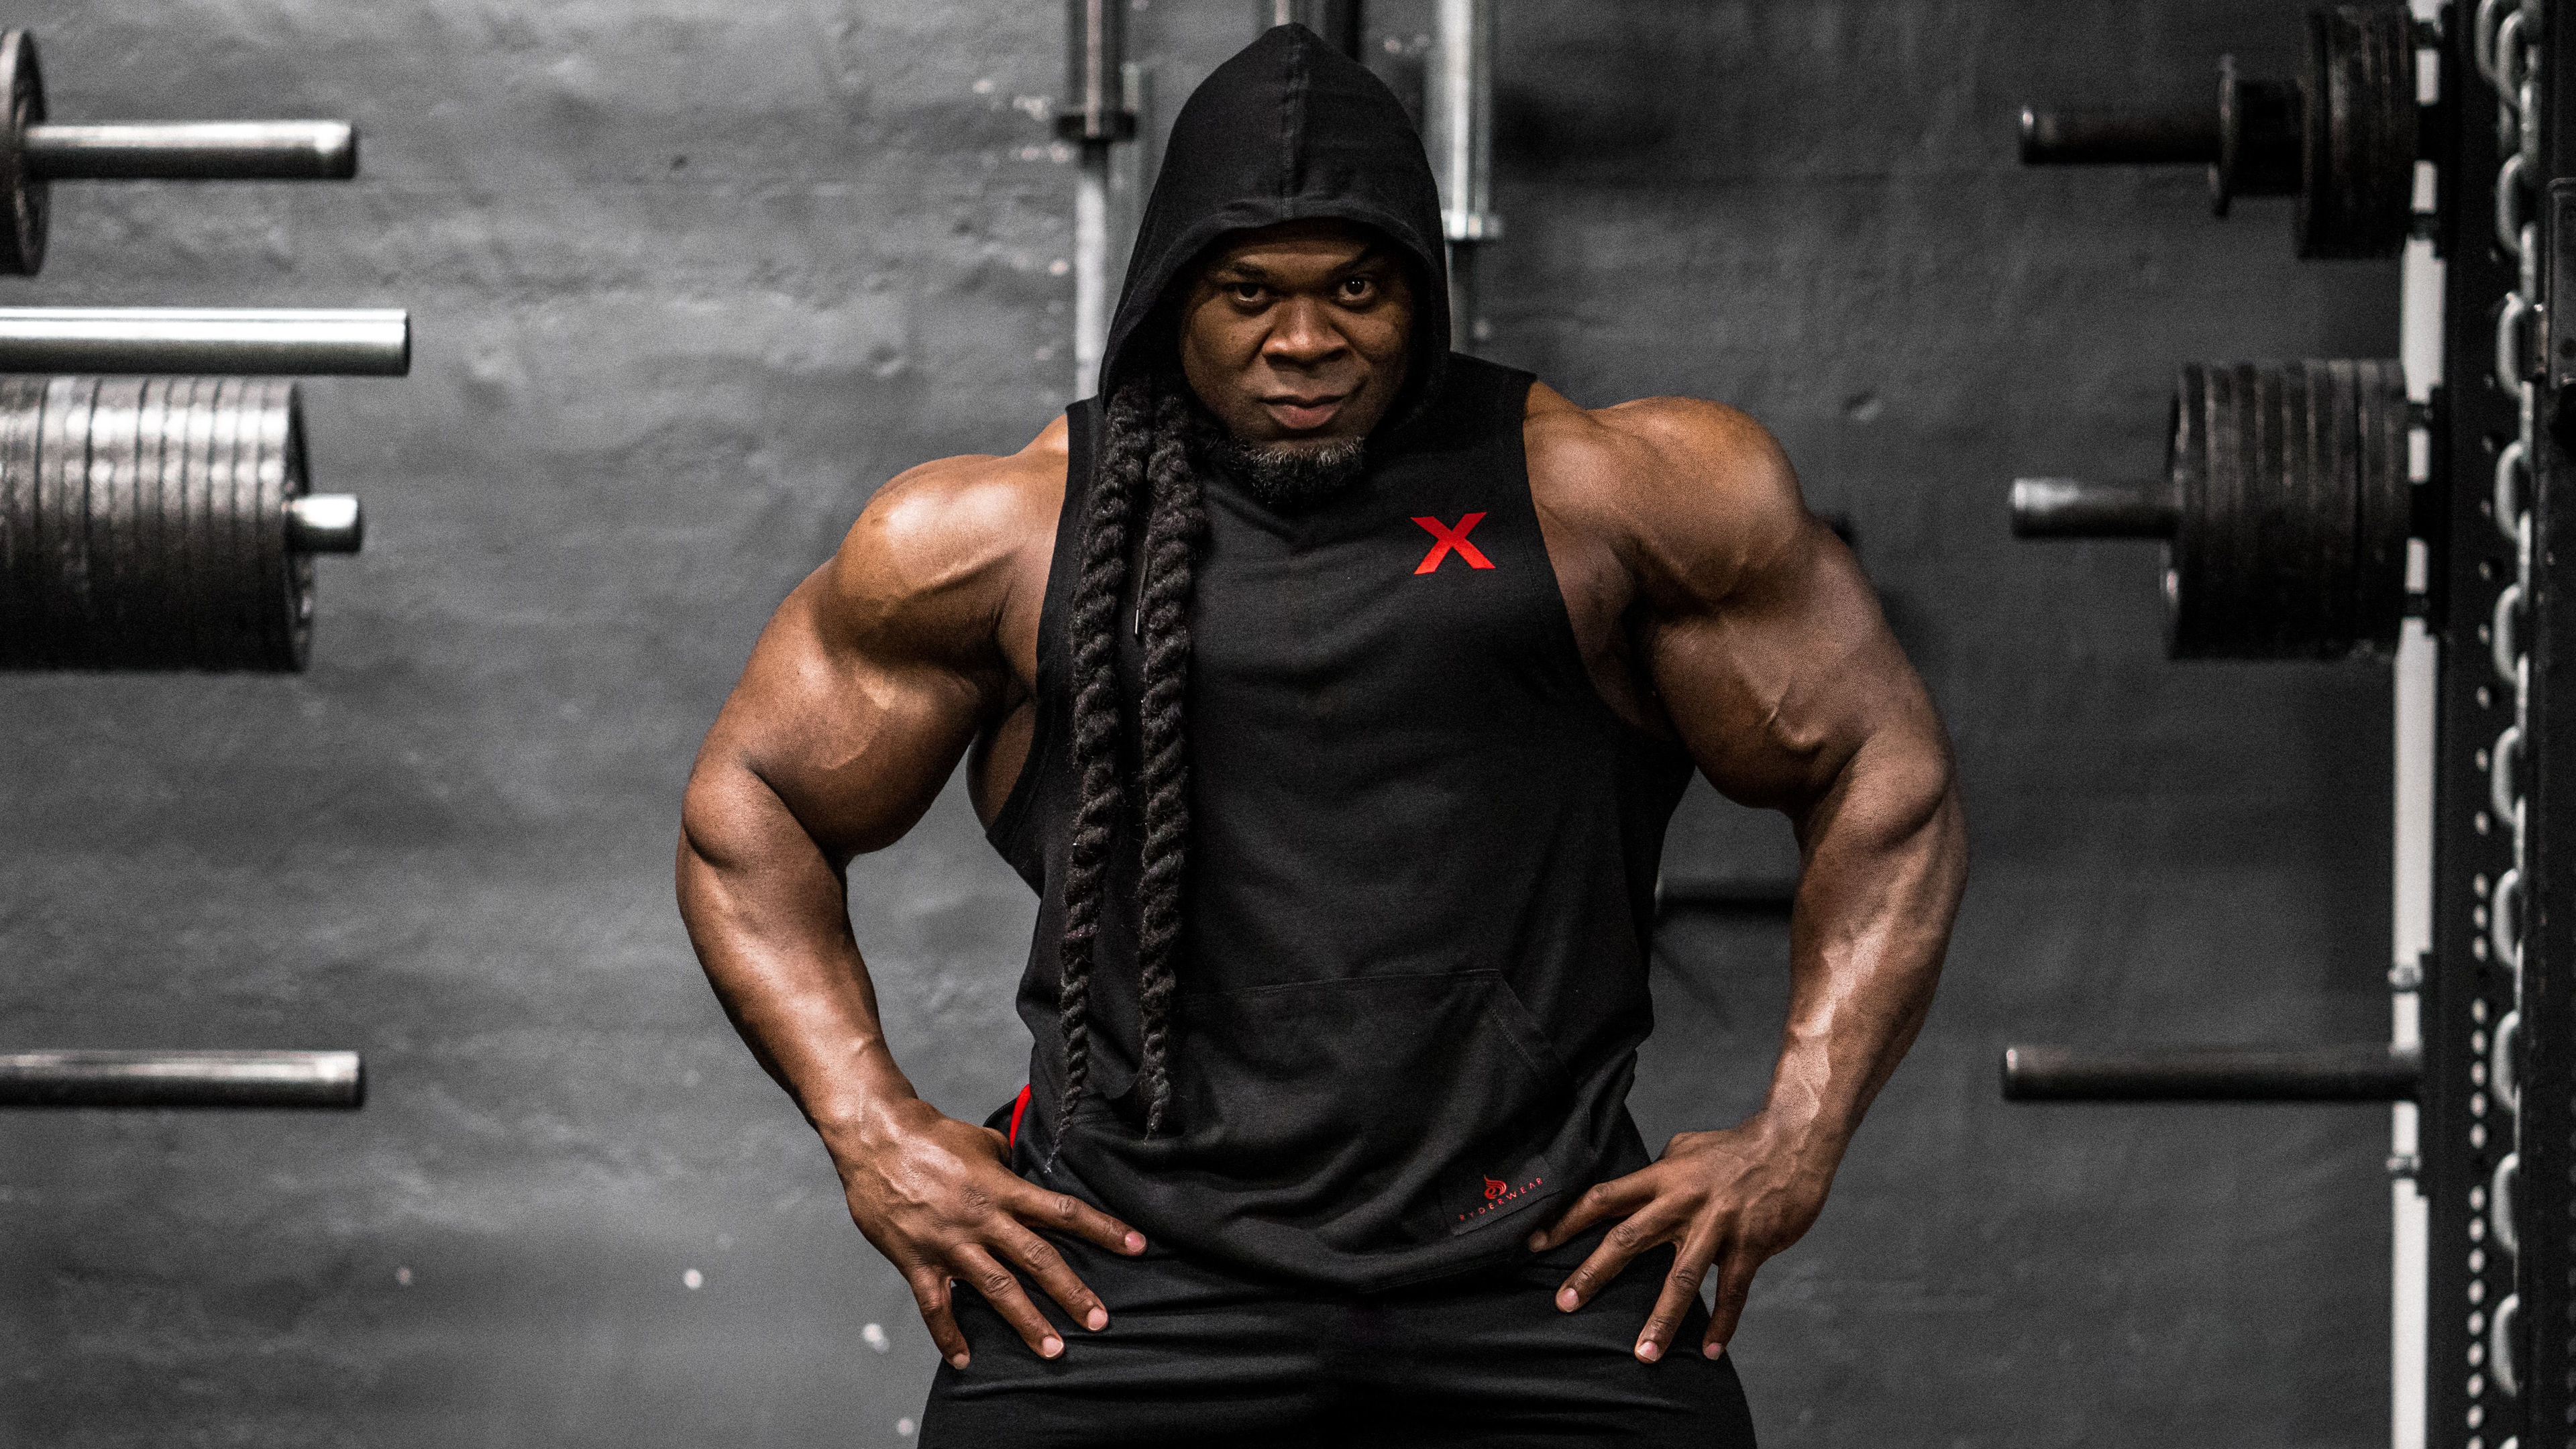 Wallpaper 4k Kai Greene 4k 4k Wallpapers Boys Wallpapers Gym Wallpapers Hd Wallpapers Kai Greene Wallpapers Male Celebrities Wallpapers Sports Wallpapers